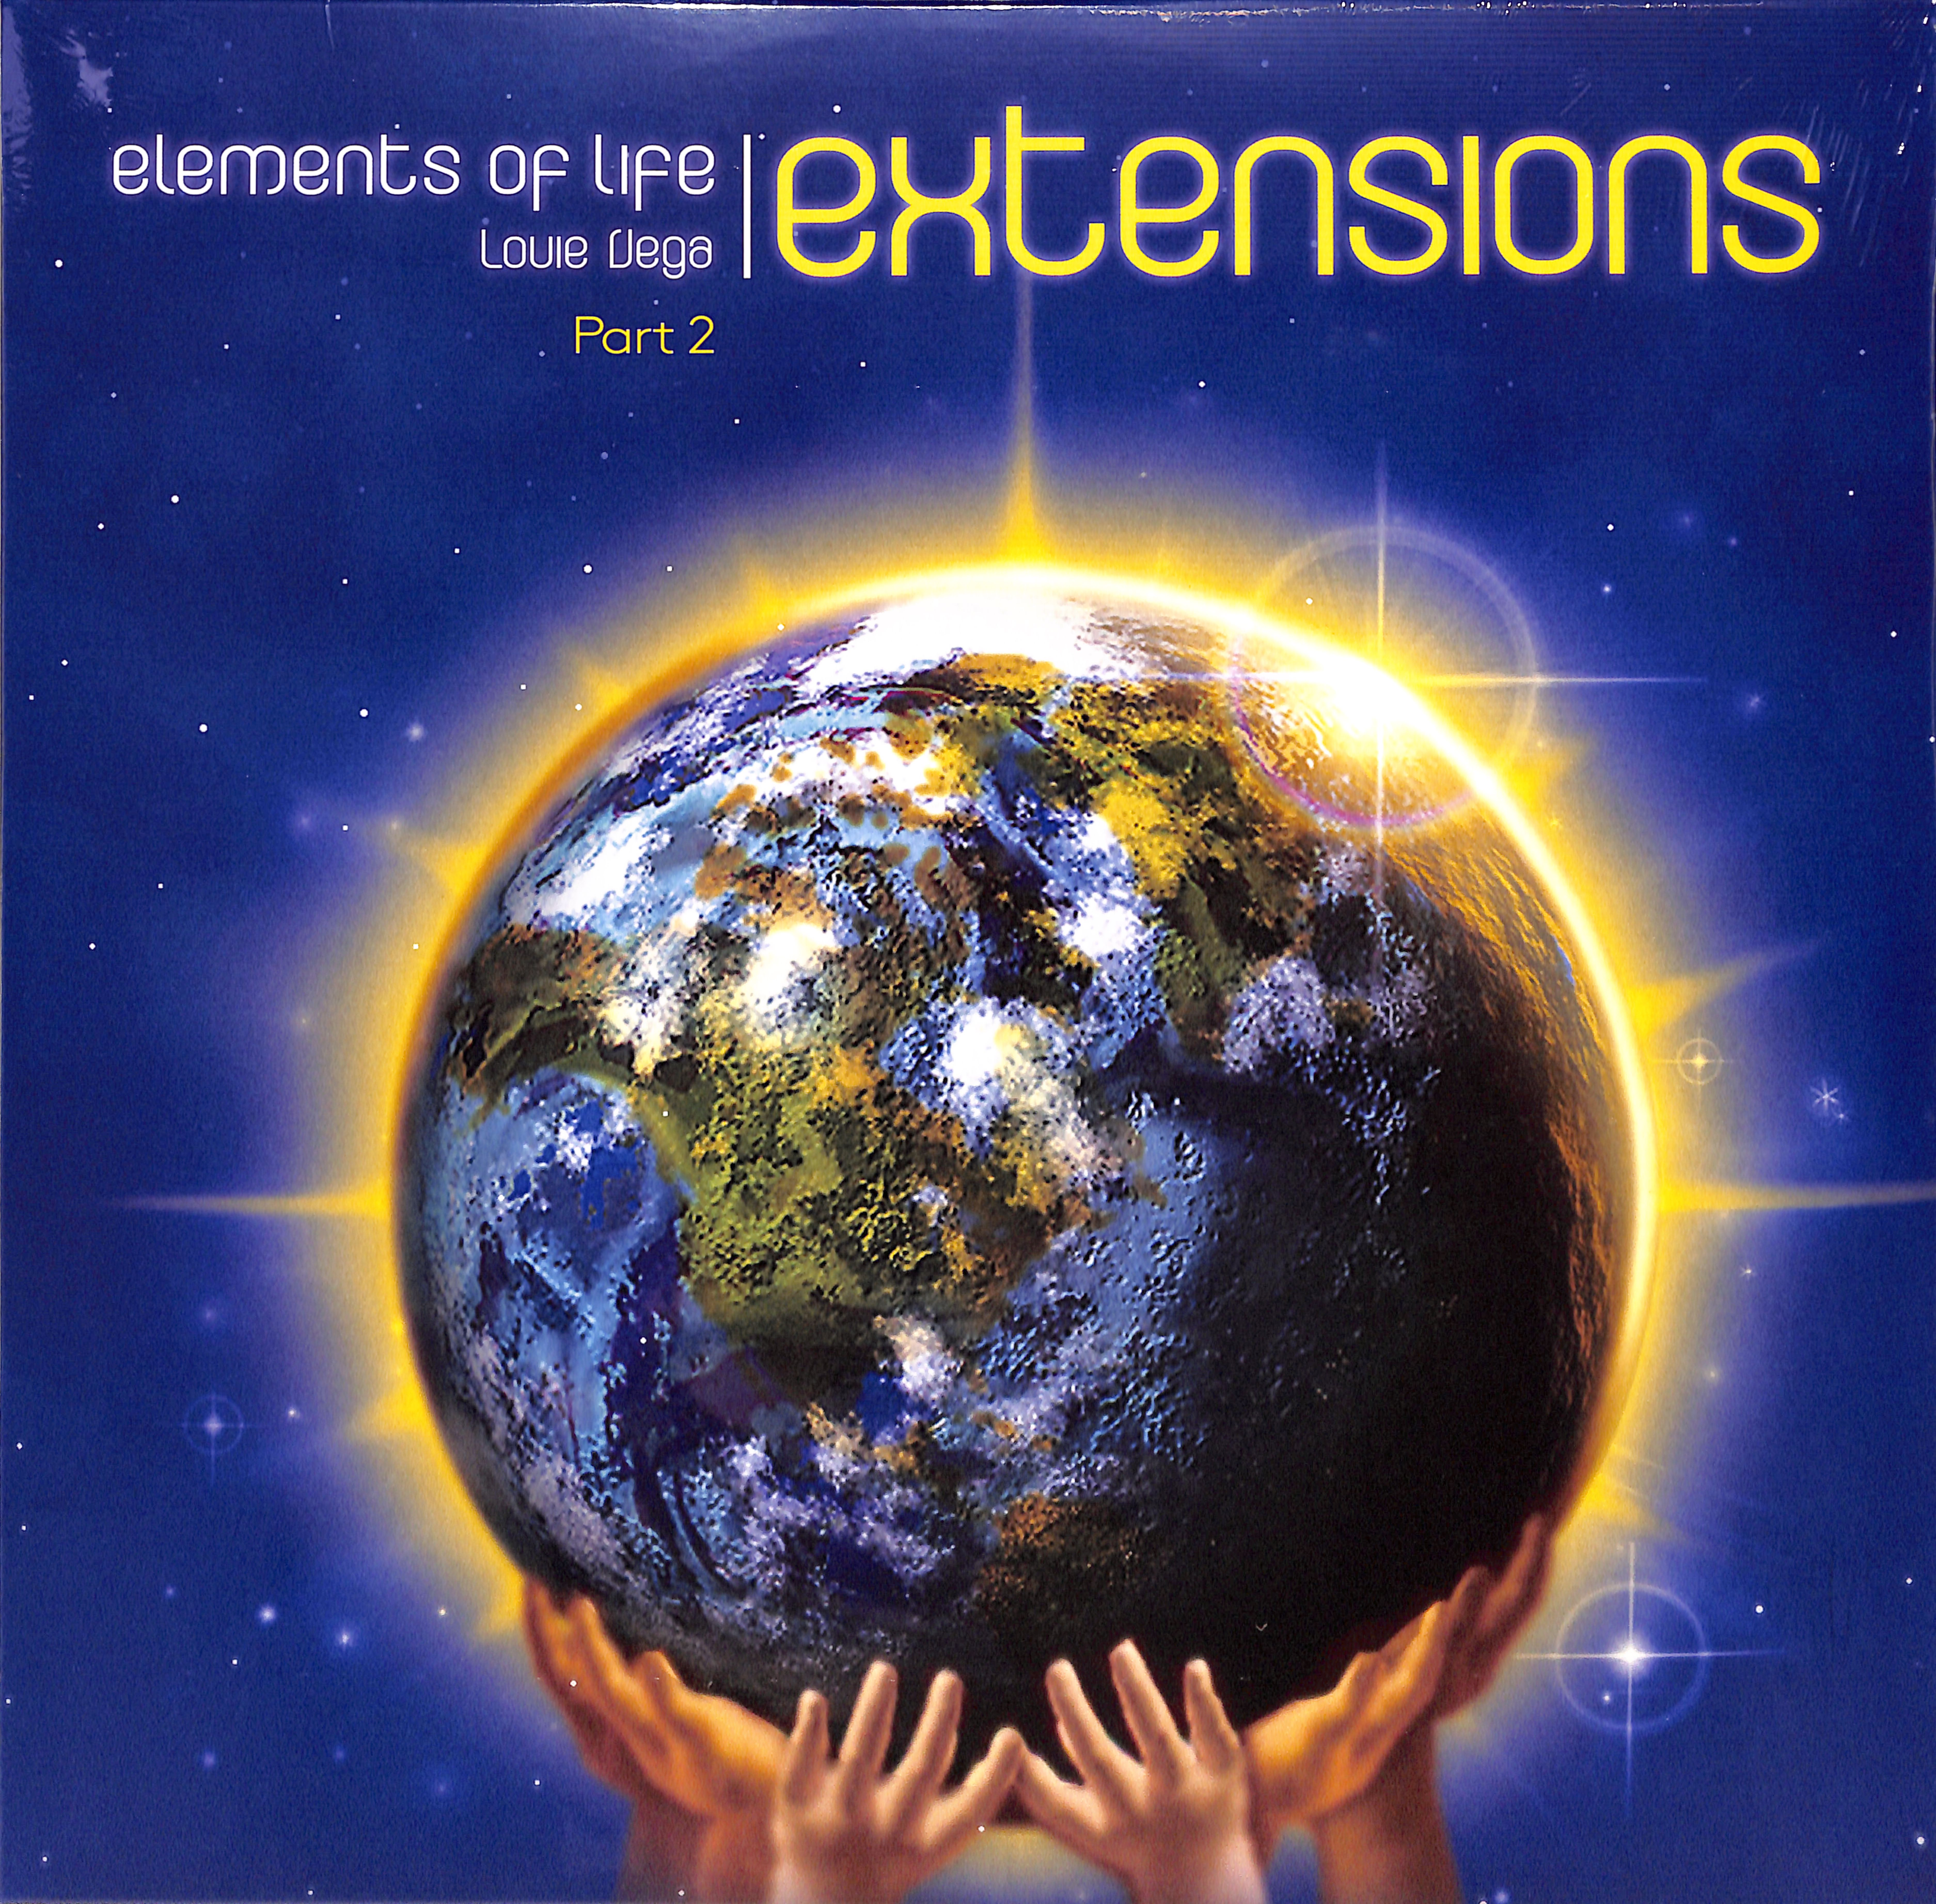 Elements of Life - ELEMENTS OF LIFE EXTENSIONS PART 2